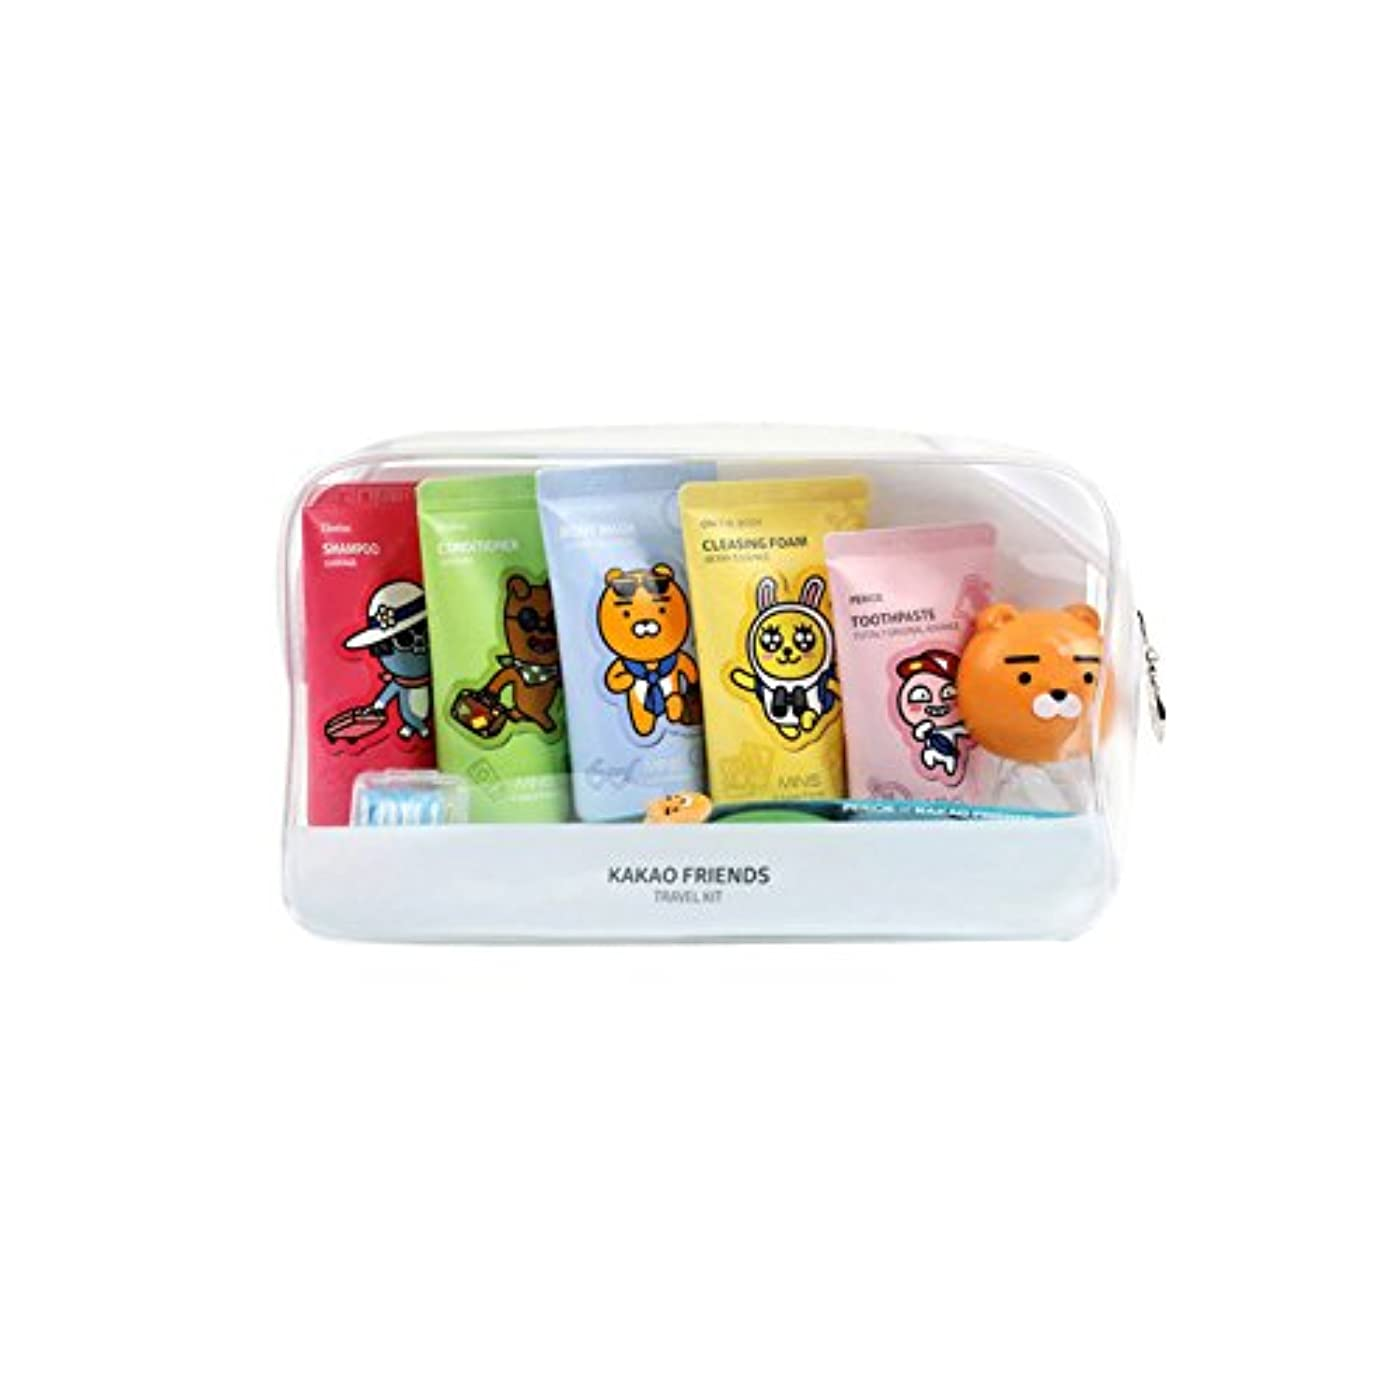 下手狂気絶滅KAKAO Friends Convenience Travel Kit 7 Piece Shampoo,Conditioner,Body Wash,Cleansing Foam,Tooth Paste,Tooth Brush...